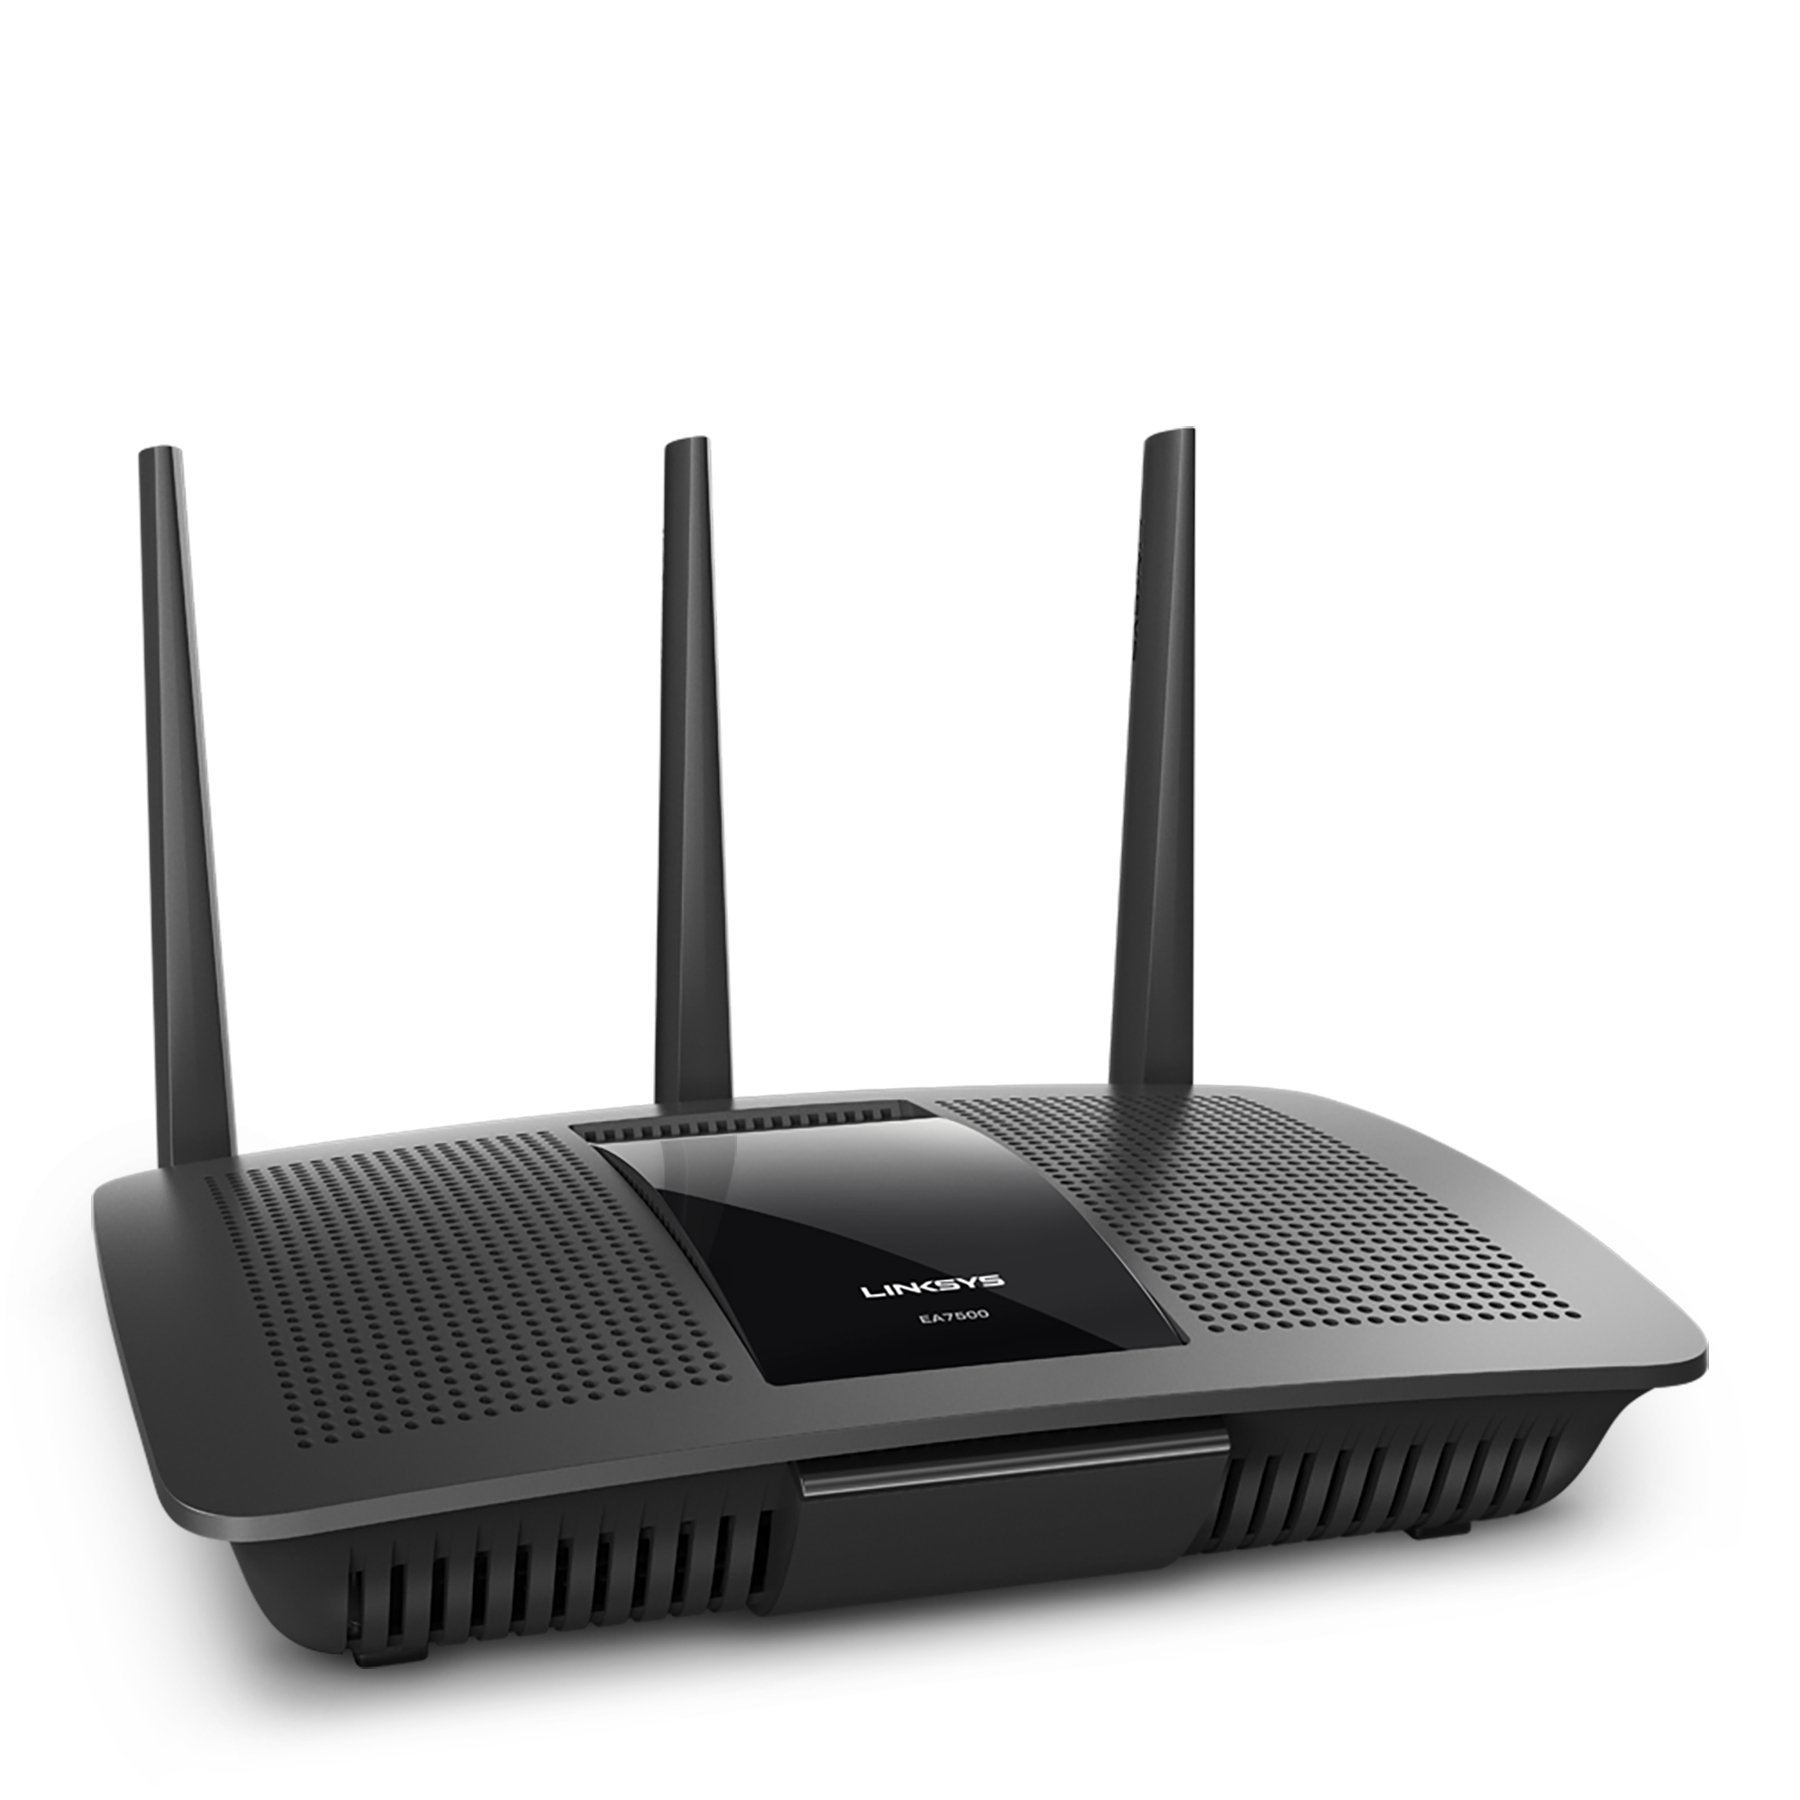 Linksys AC1900 Dual Band Wireless Router, Works with Amazon Alexa (Max Stream EA7500) by Linksys